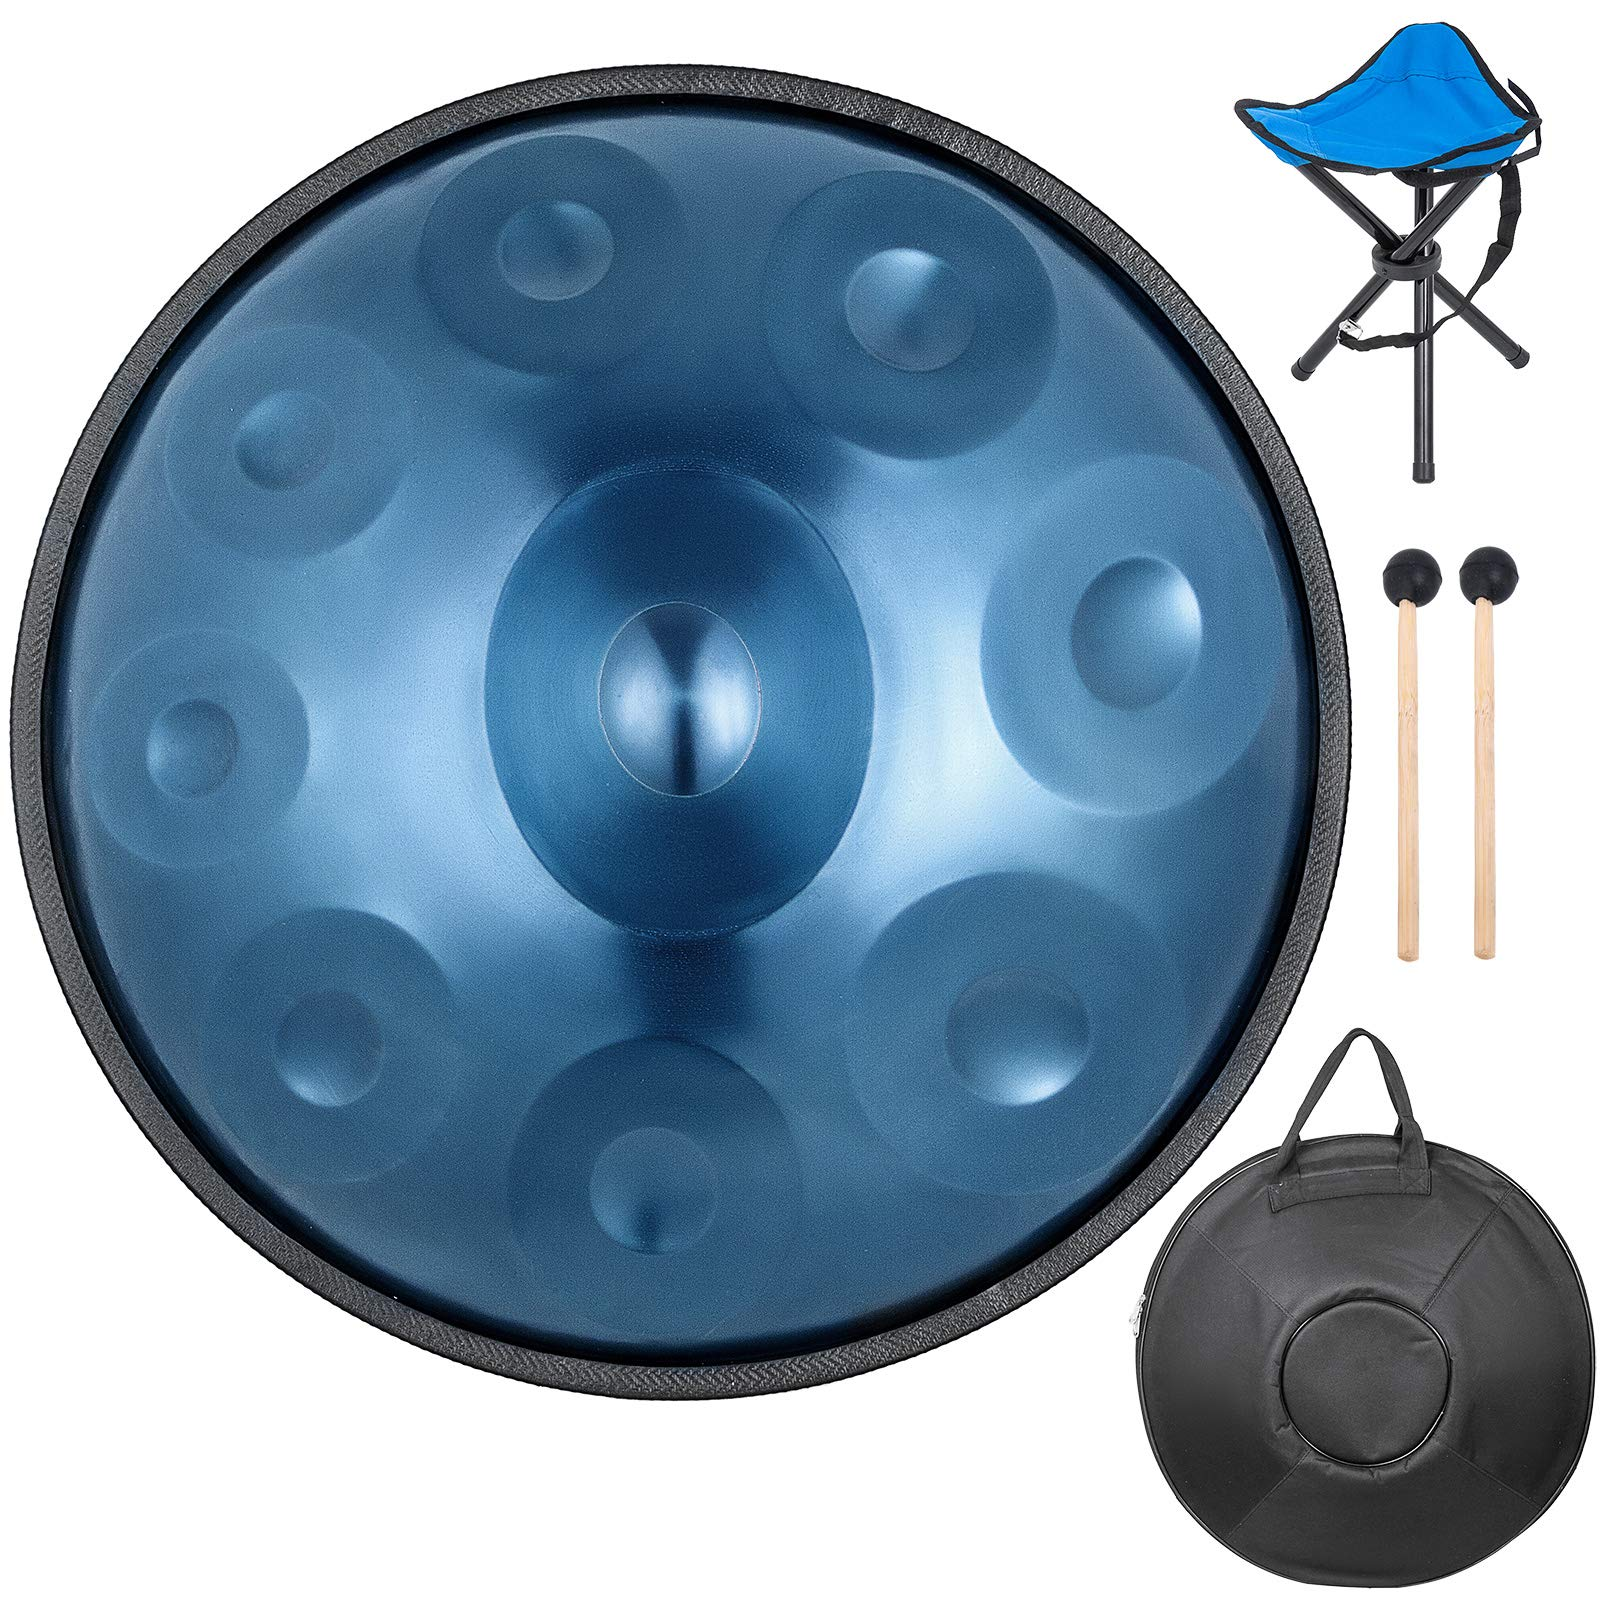 Happybuy Handpan In D Minor 9 Notes Steel Hand Drum with Soft Hand Pan Bag Hand Pan Hang Drum 2 (22.8'' (58cm) Deep Blue (d Minor) 9 Notes (d3 A Bb C D E F G A) by Happybuy